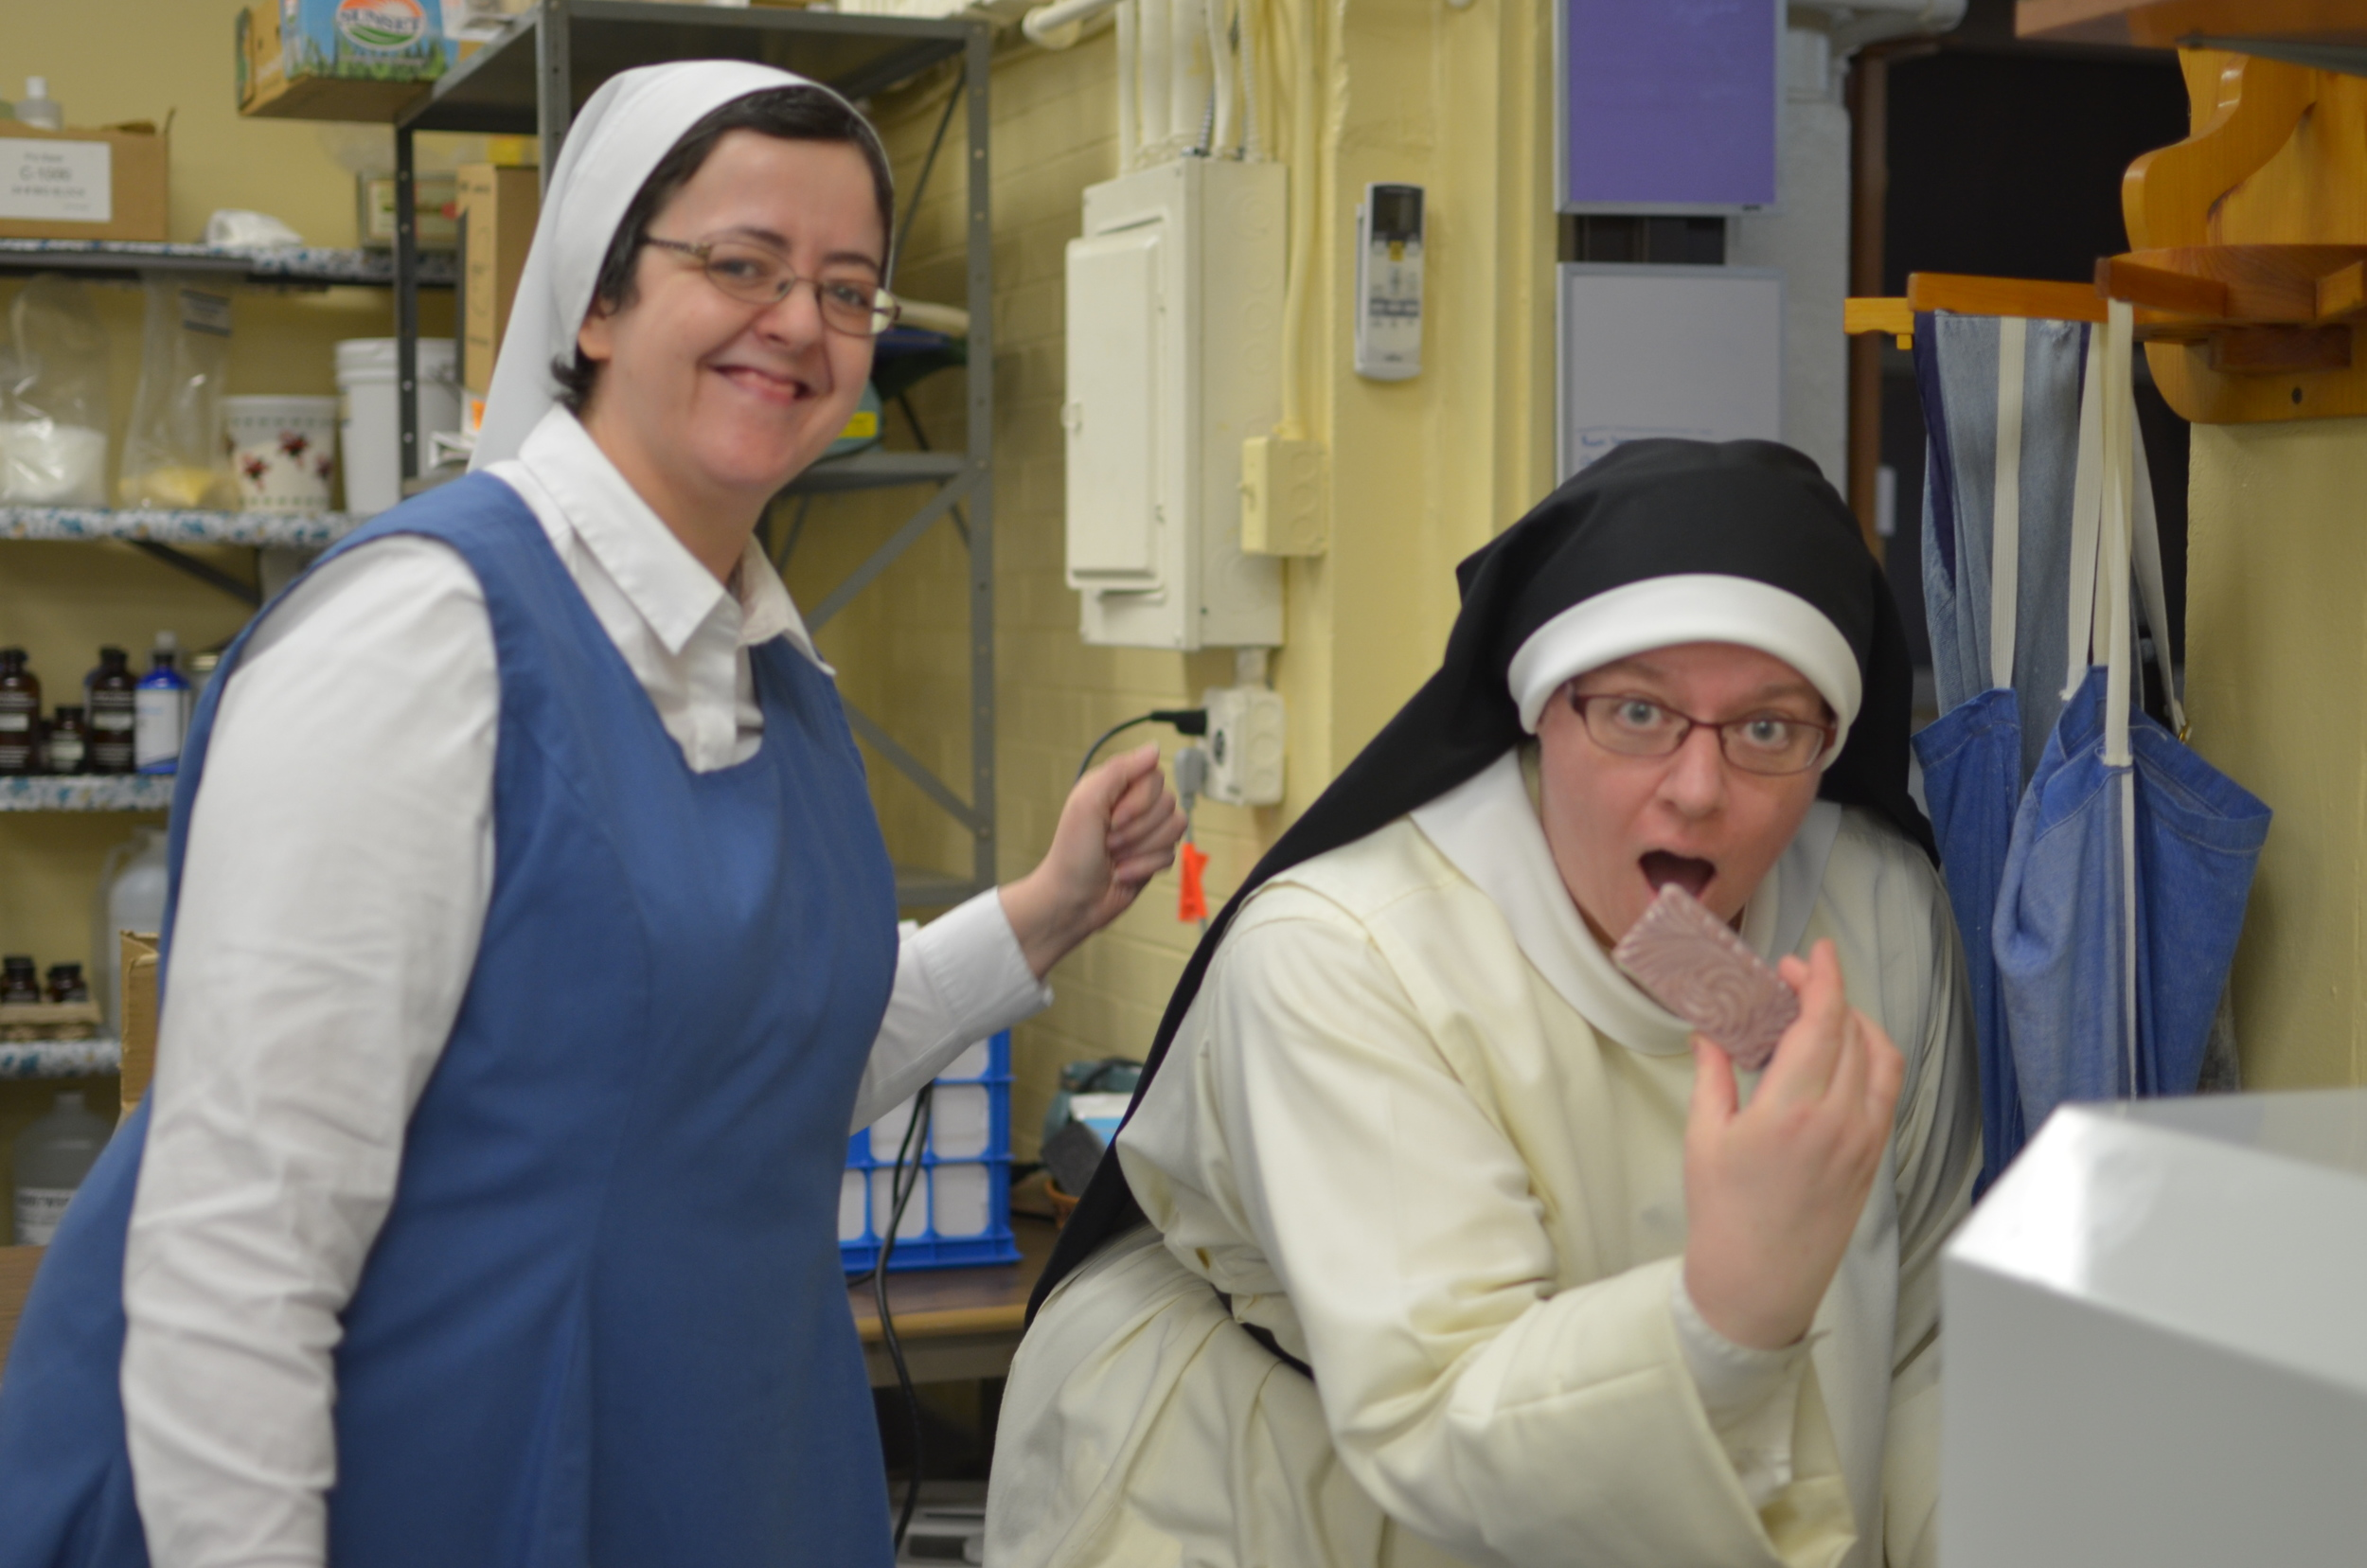 """With the help of Sr. Aisling Sr. Judith Miryam becomes """"friends"""" with """"Gertie"""" the Shrink Tunnel!"""